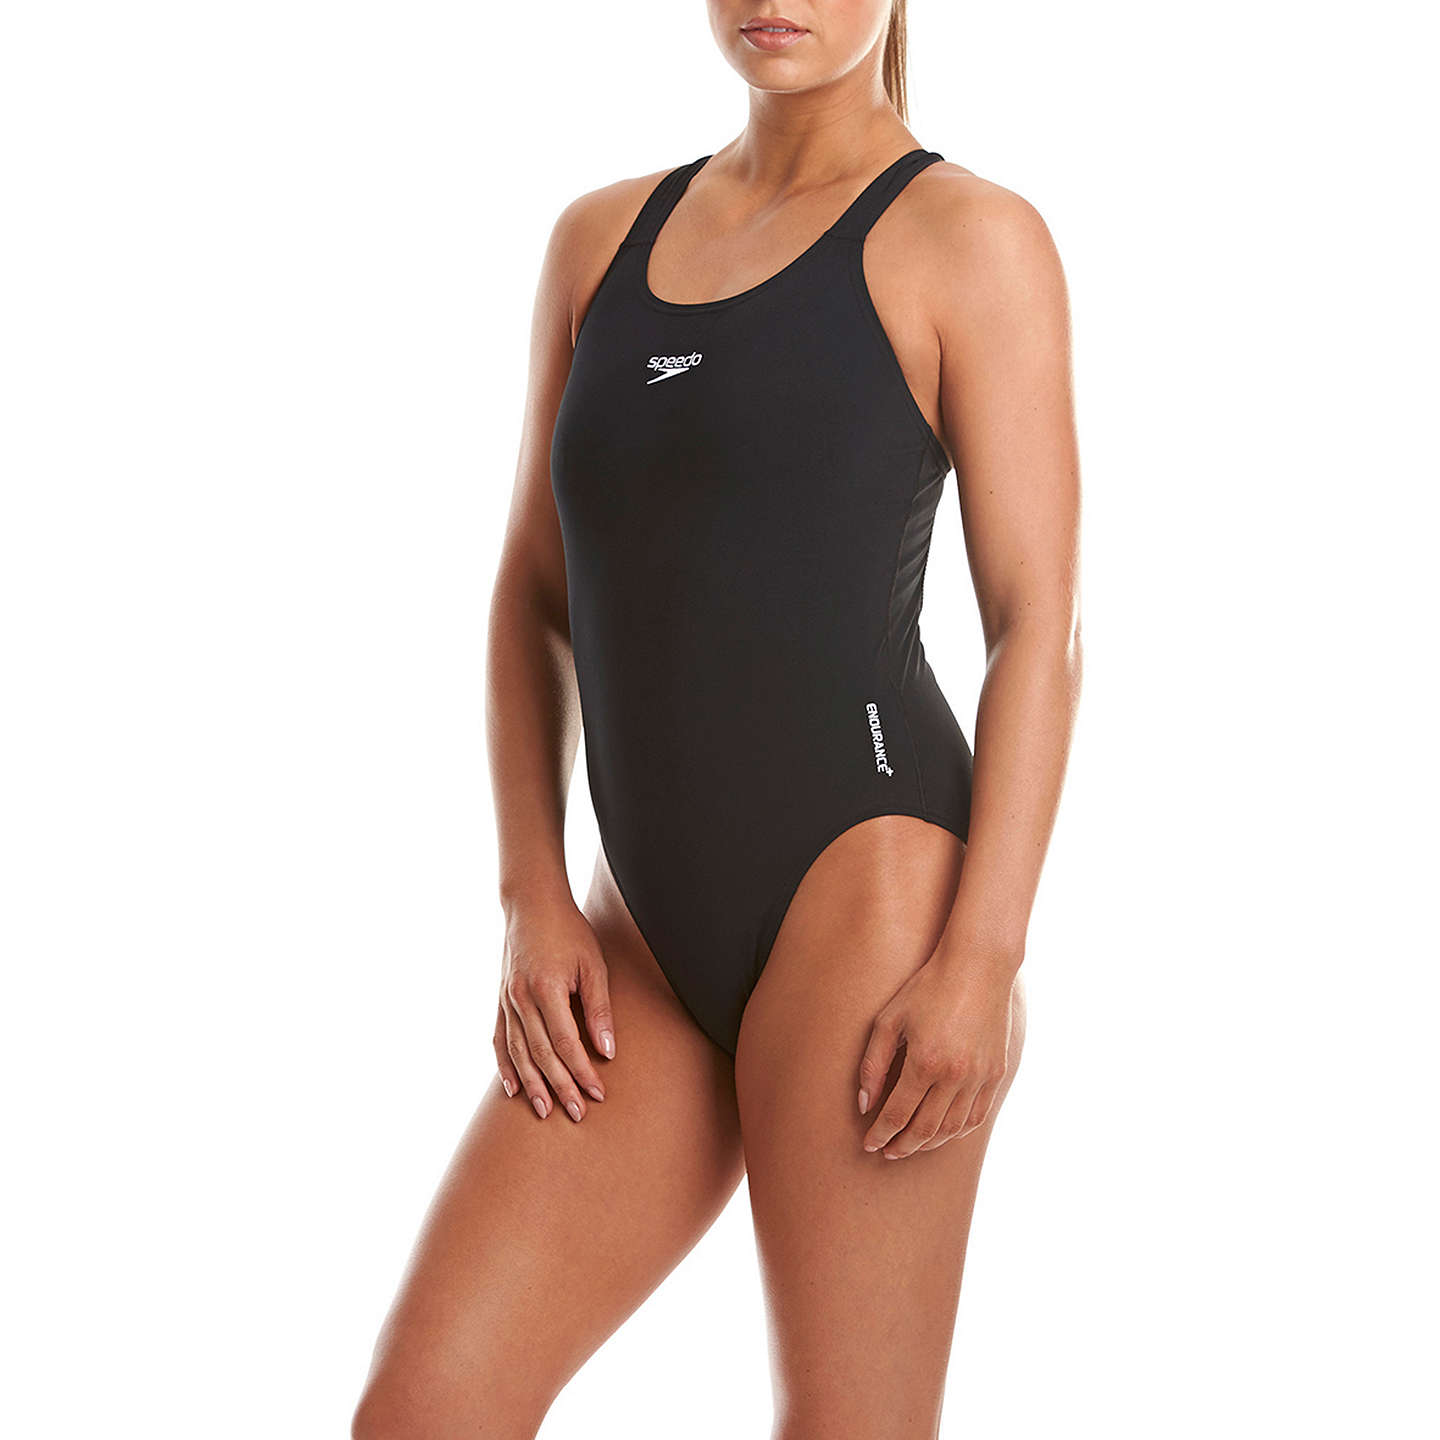 BuySpeedo Endurance+ Medalist Swimsuit, Black, 34 Online at johnlewis.com